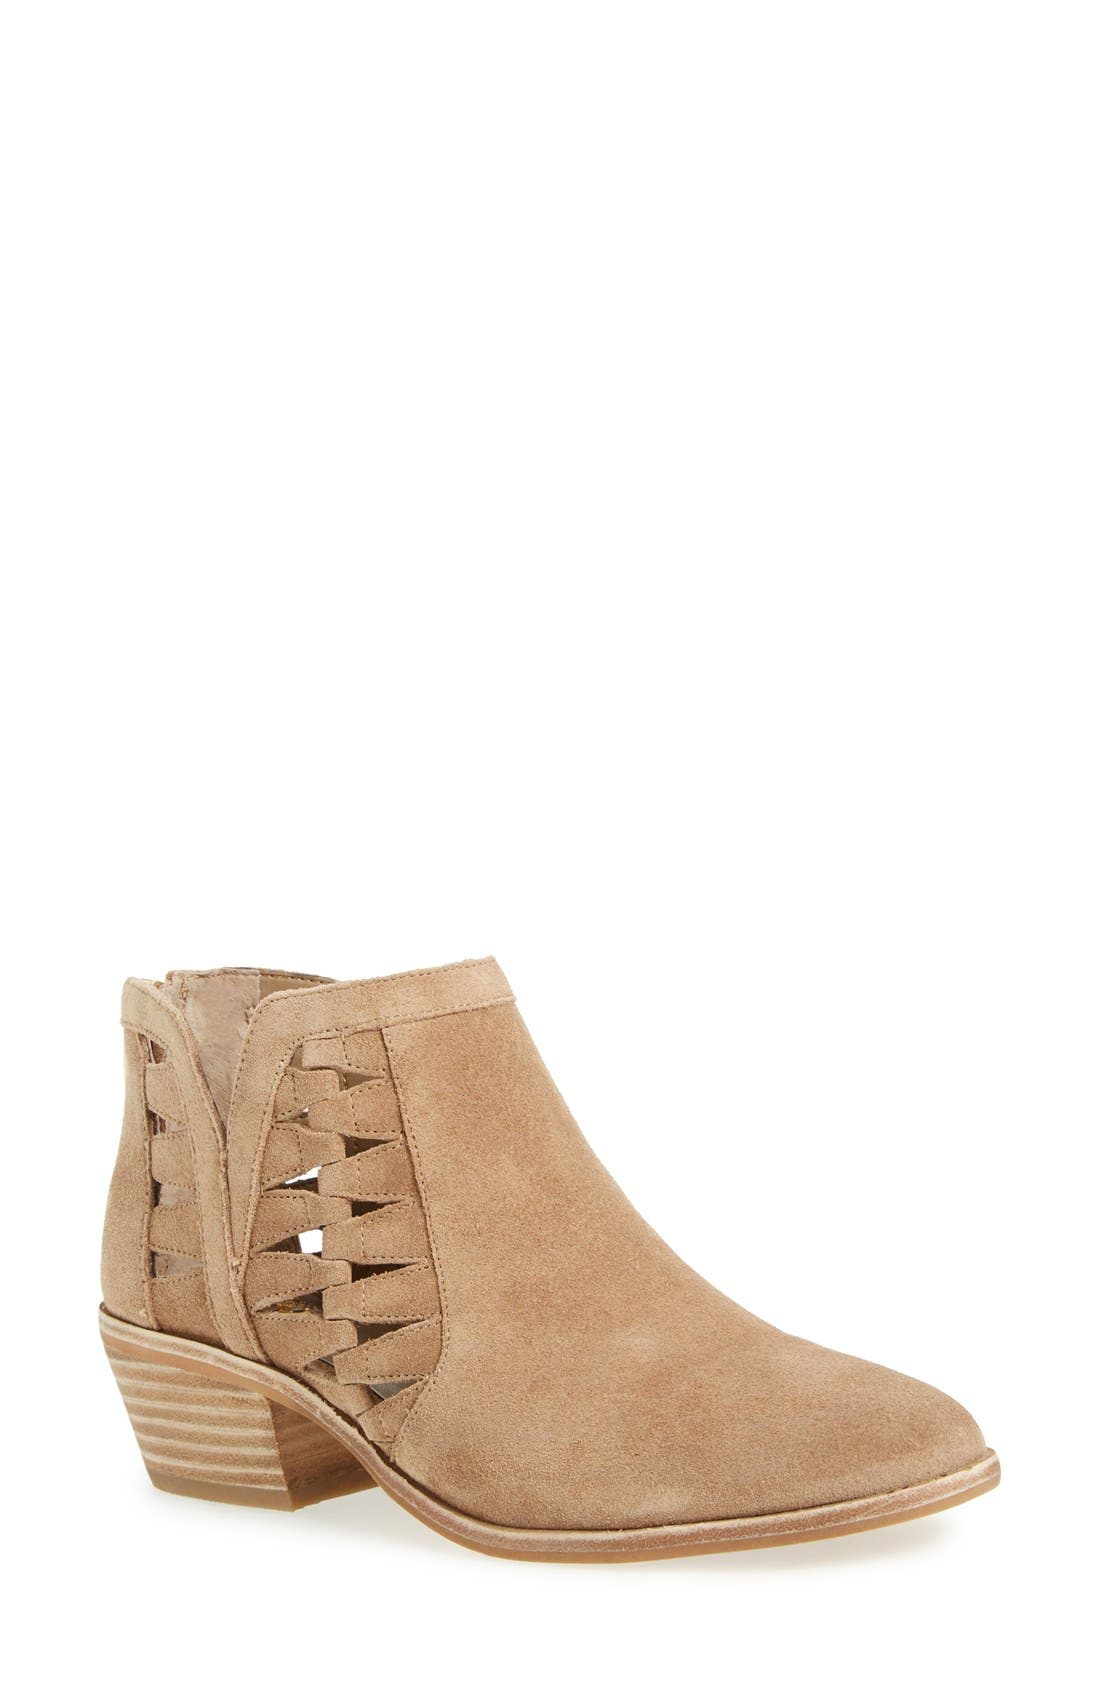 Alternate Image 1 Selected - Vince Camuto 'Peera' Cutout Bootie (Women) (Nordstrom Exclusive)